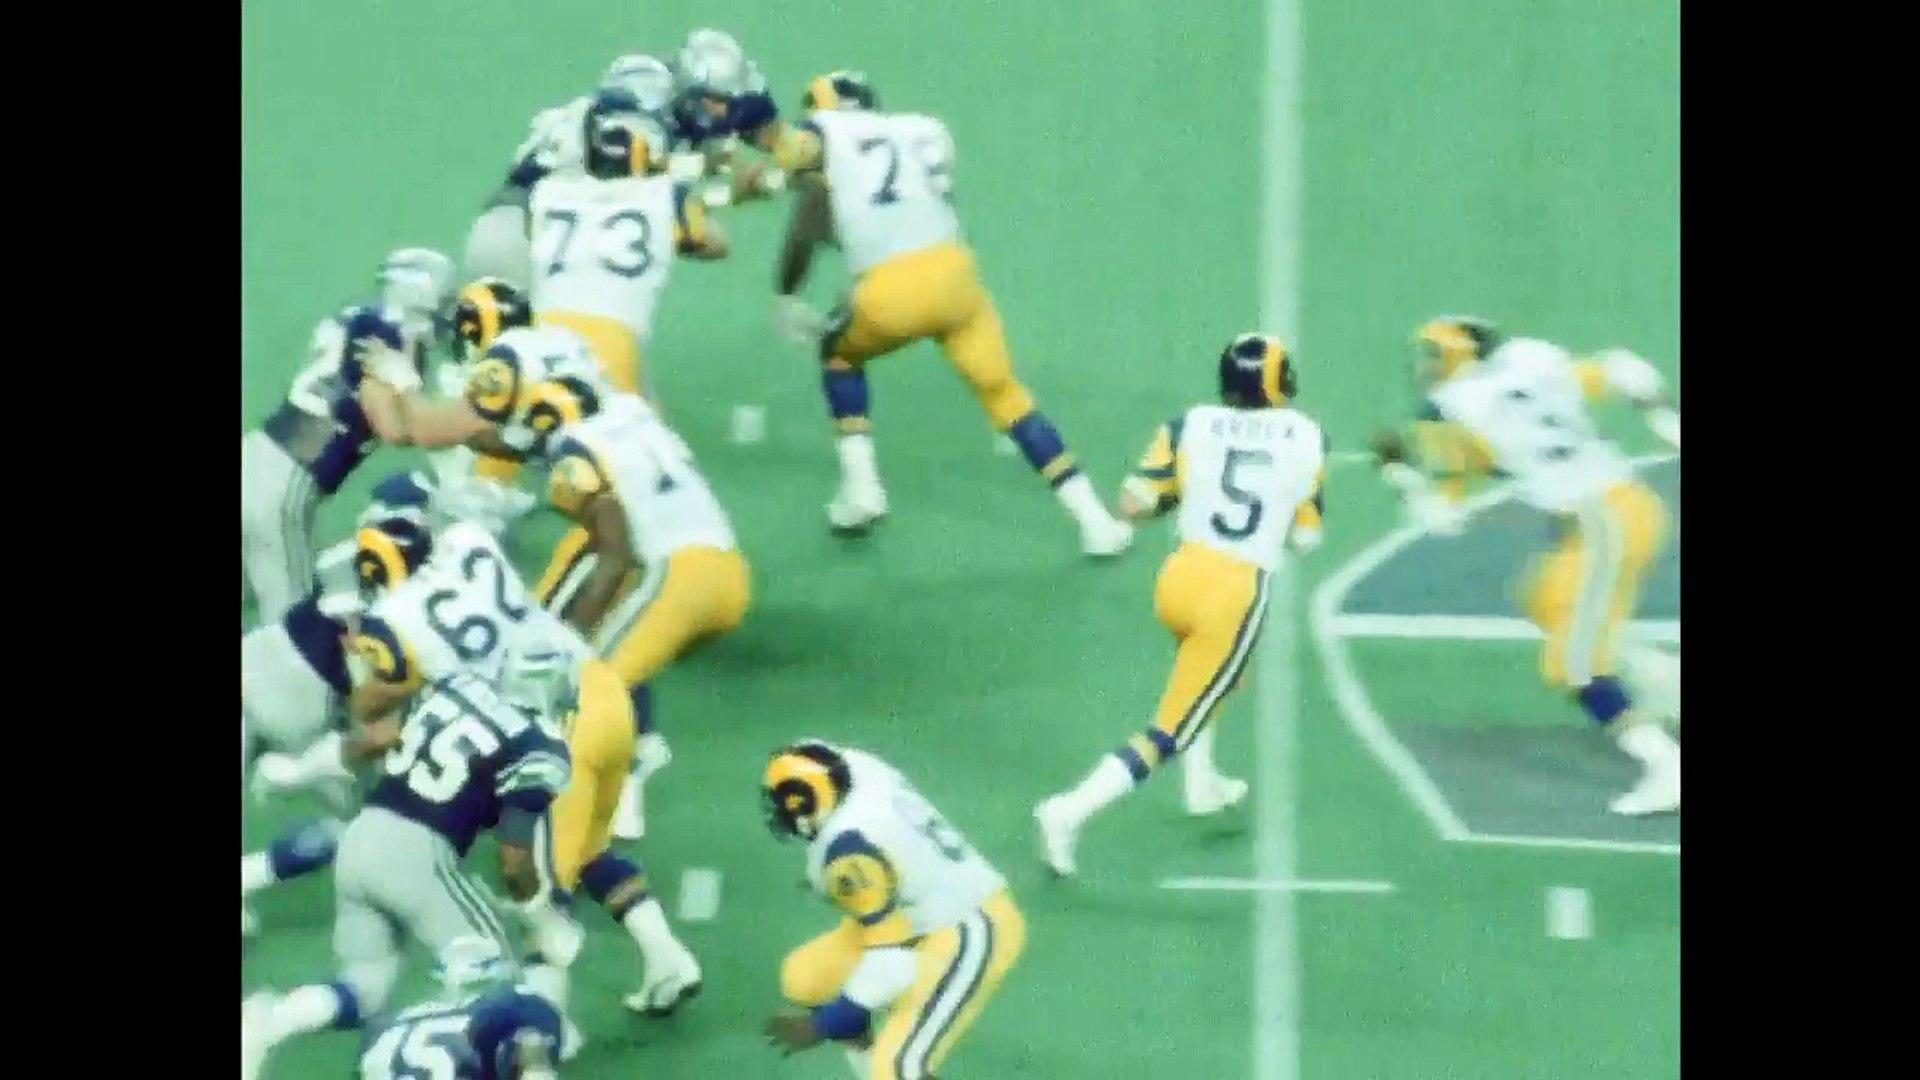 Kenny Easley's Hall of Fame Highlight Reel: The Greatest Safety in Seahawks History | NFL